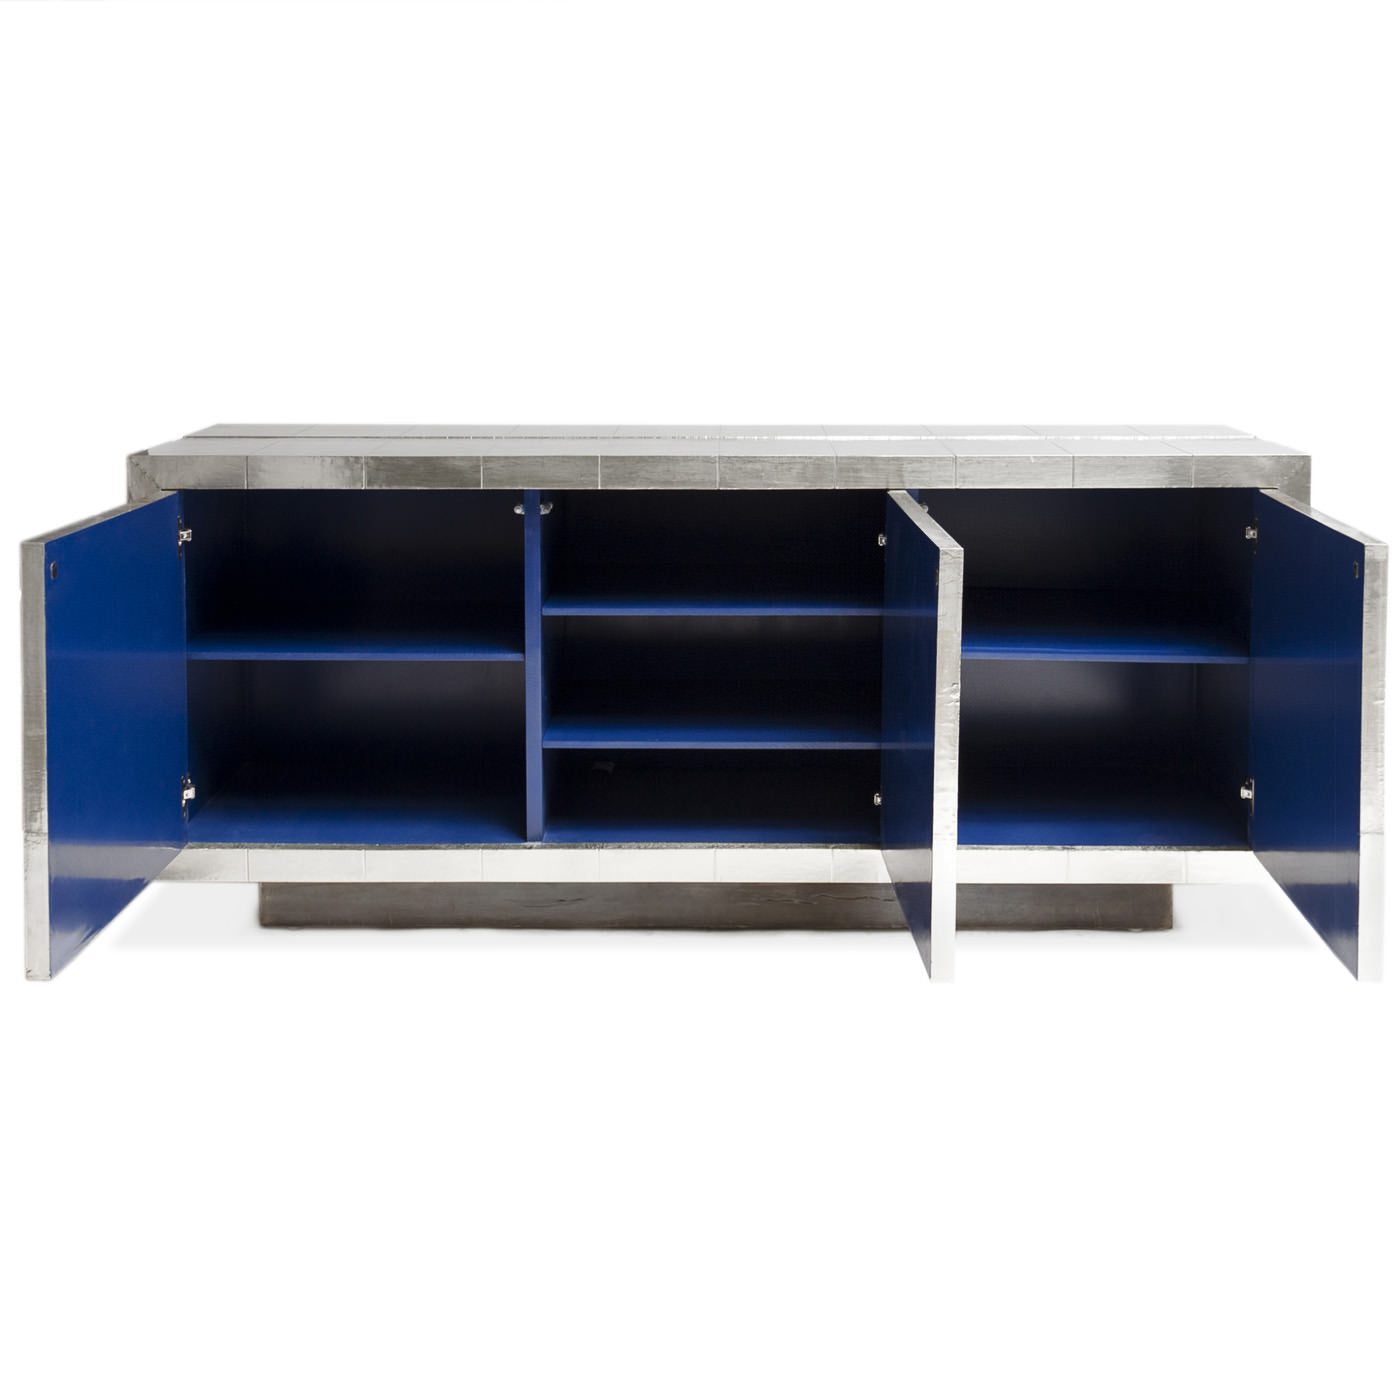 Talitha credenza jonathan adler luxe home philadelphia for E home products